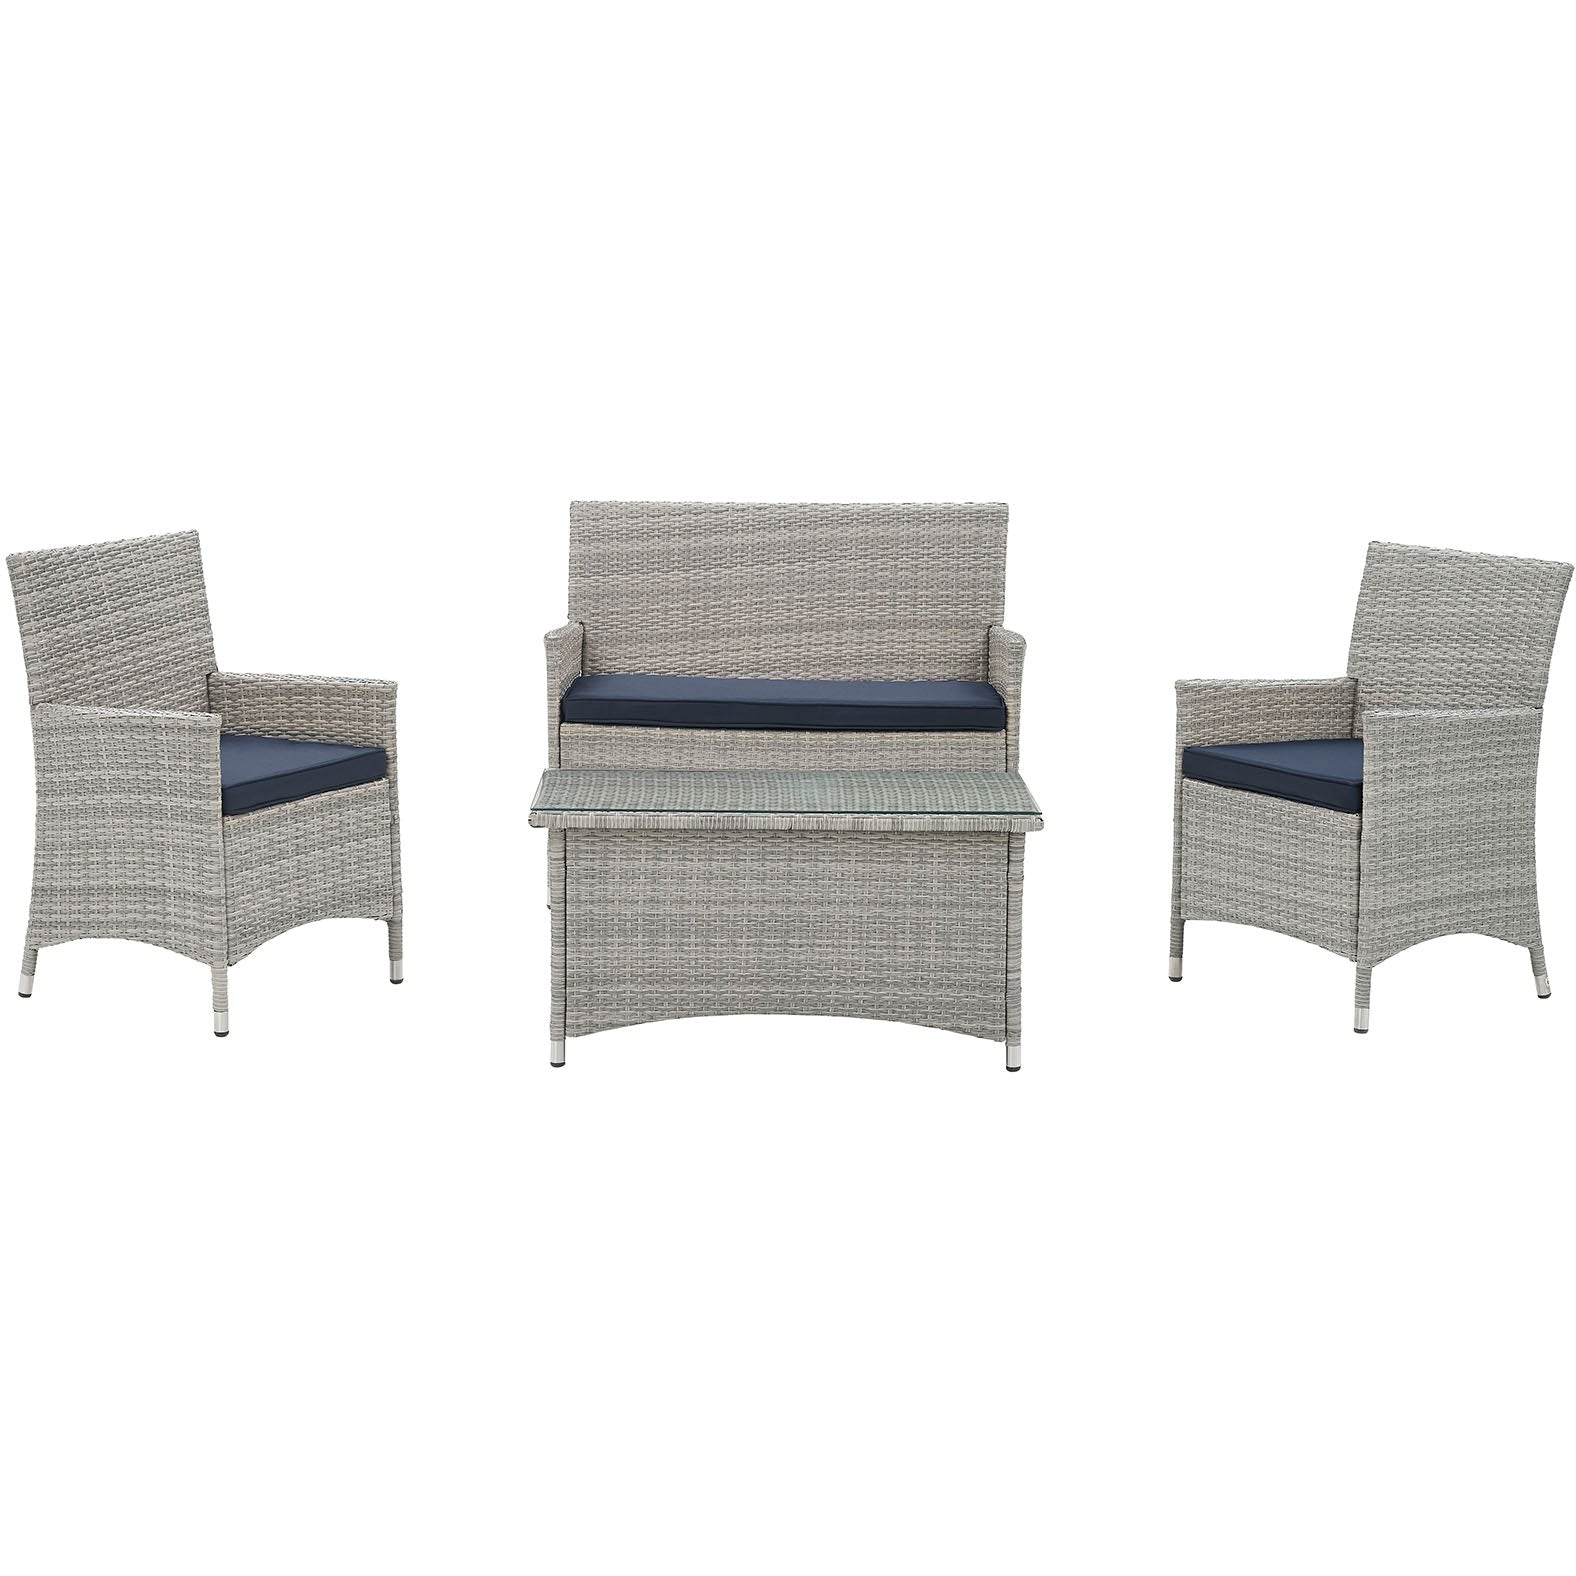 Bridge 4 Piece Outdoor Patio Patio Conversation Set - Light Gray Navy